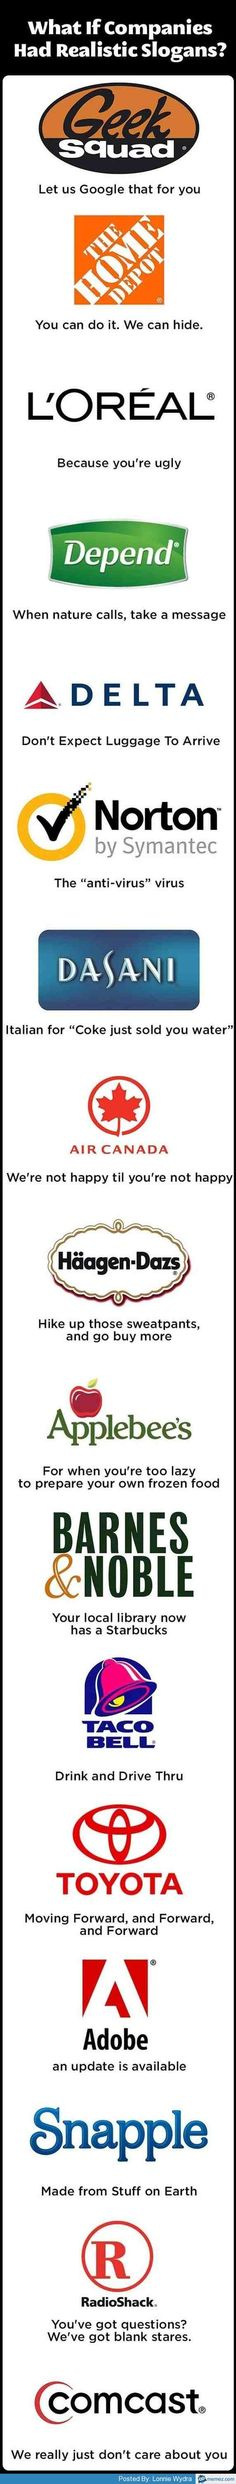 What if companies had realistic slogans